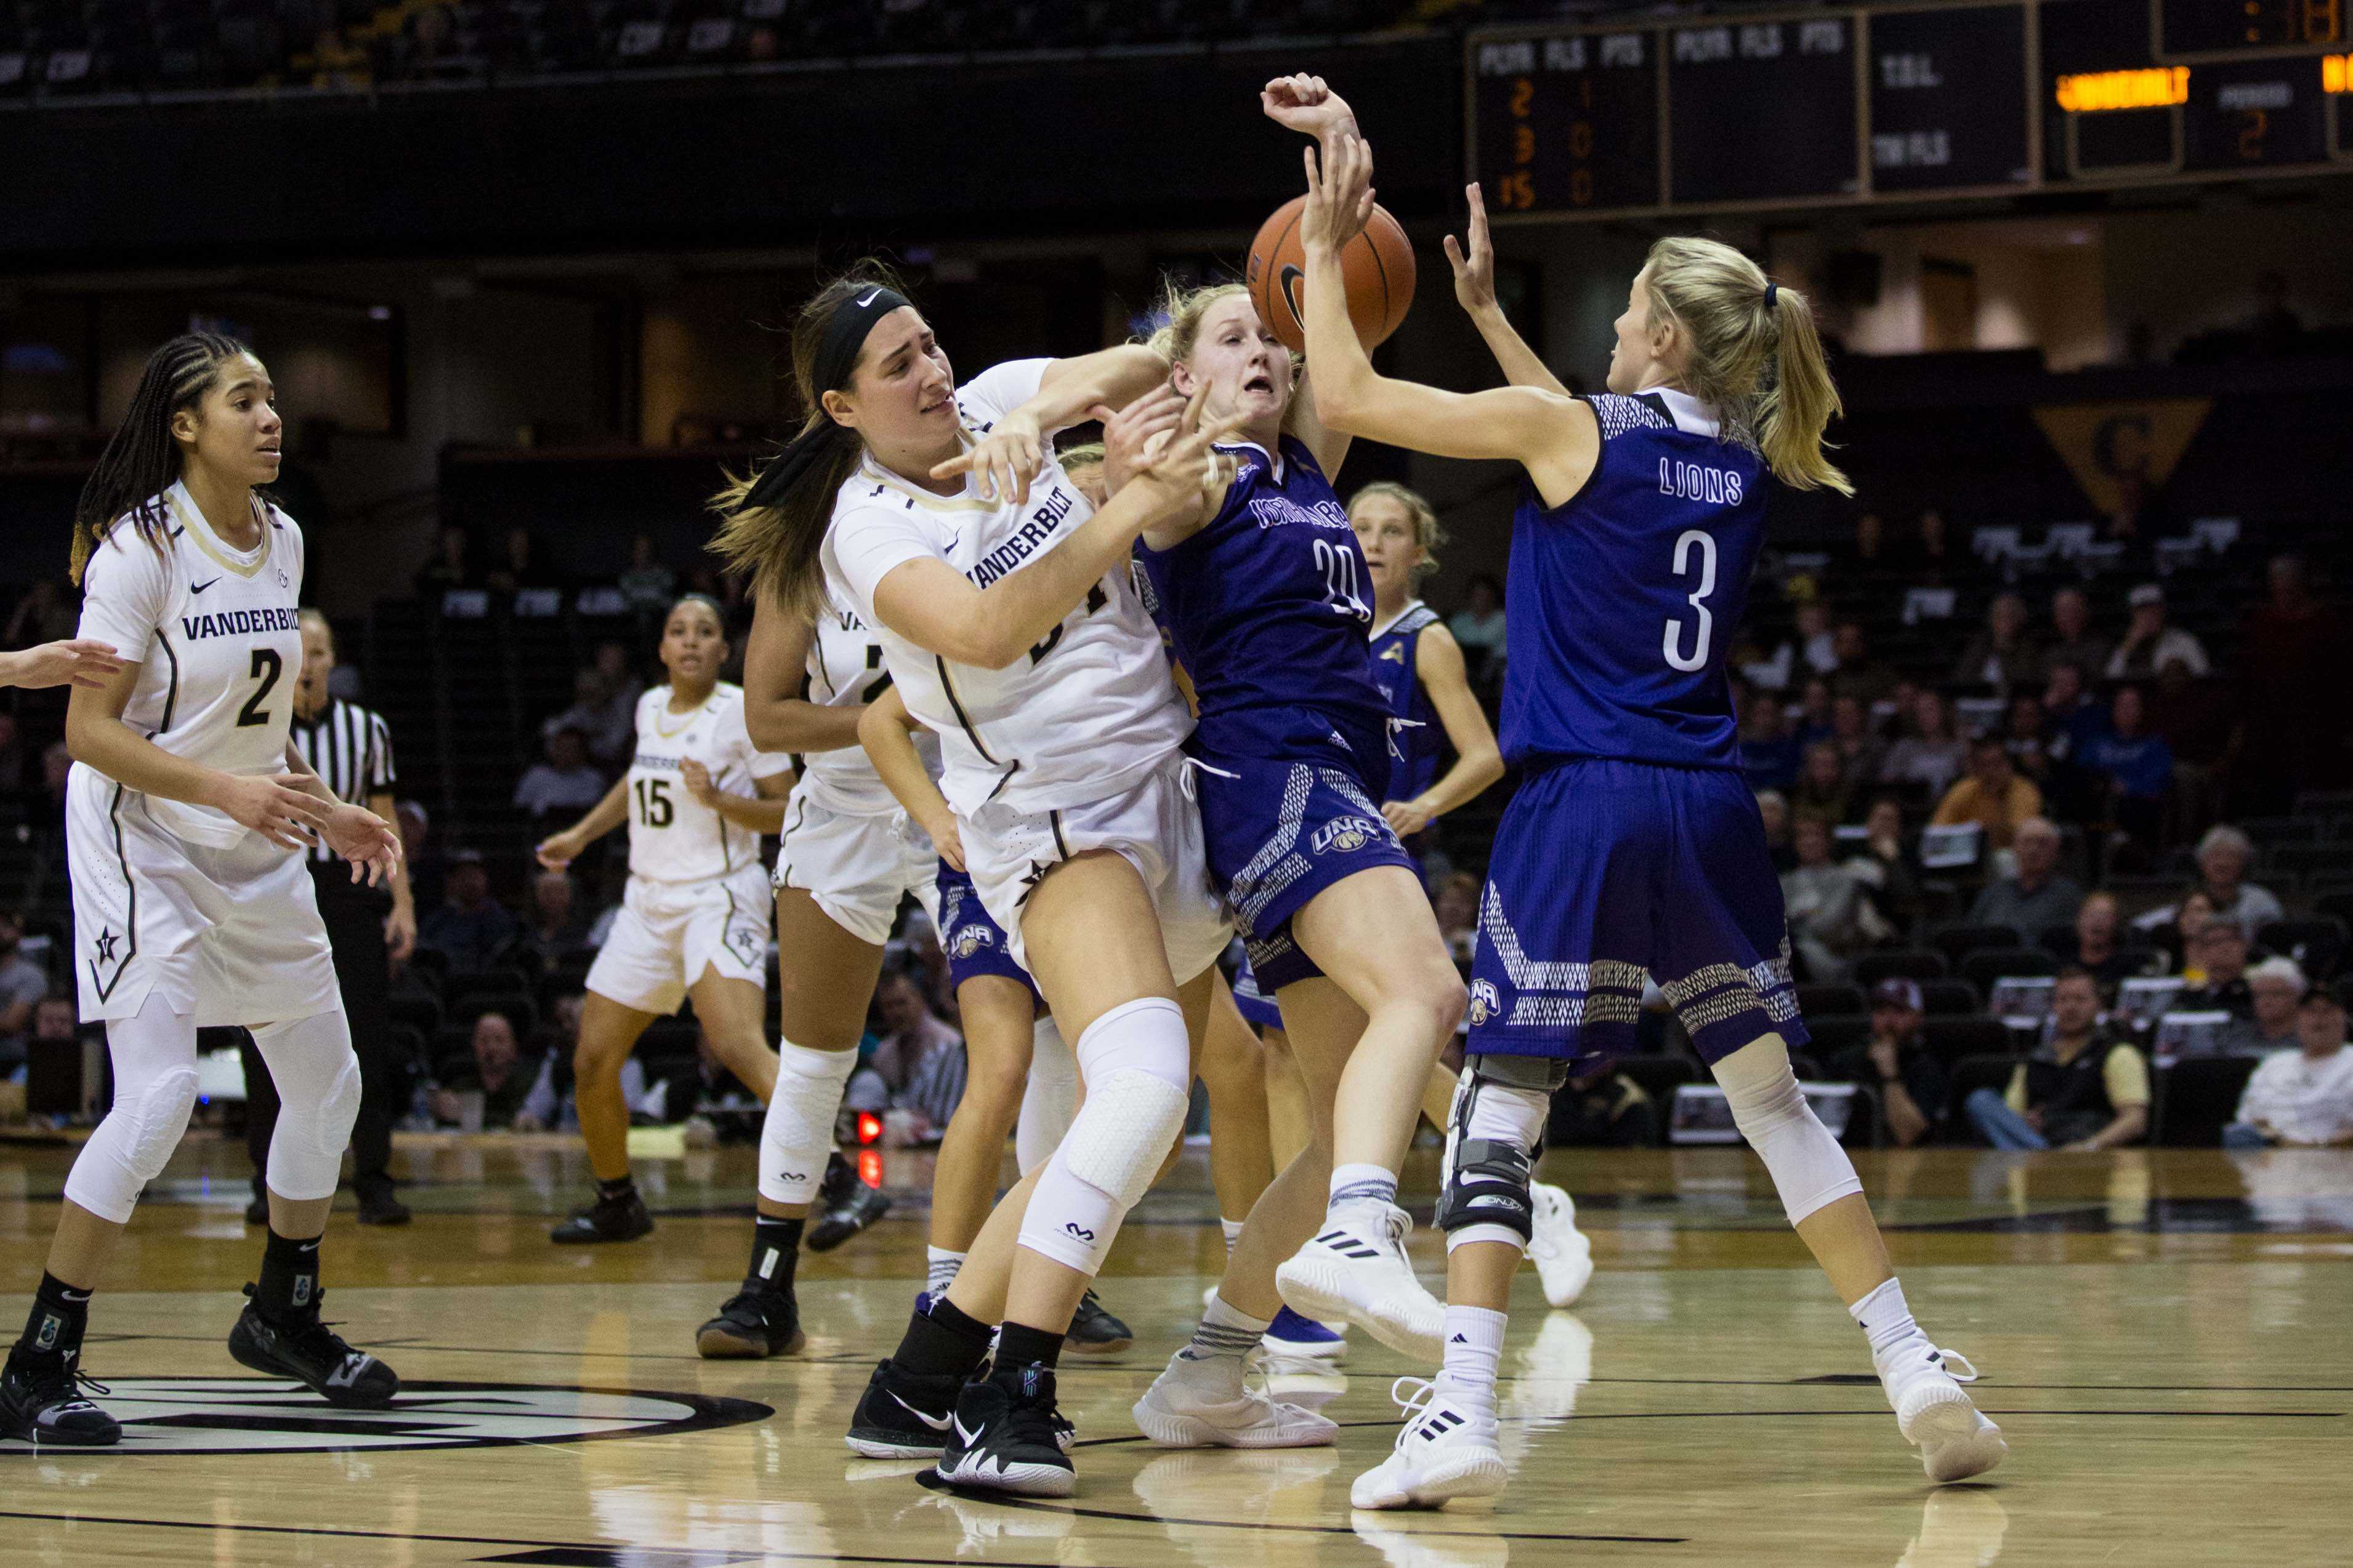 Vanderbilt Women's Basketball drops opener to North Alabama 74-71